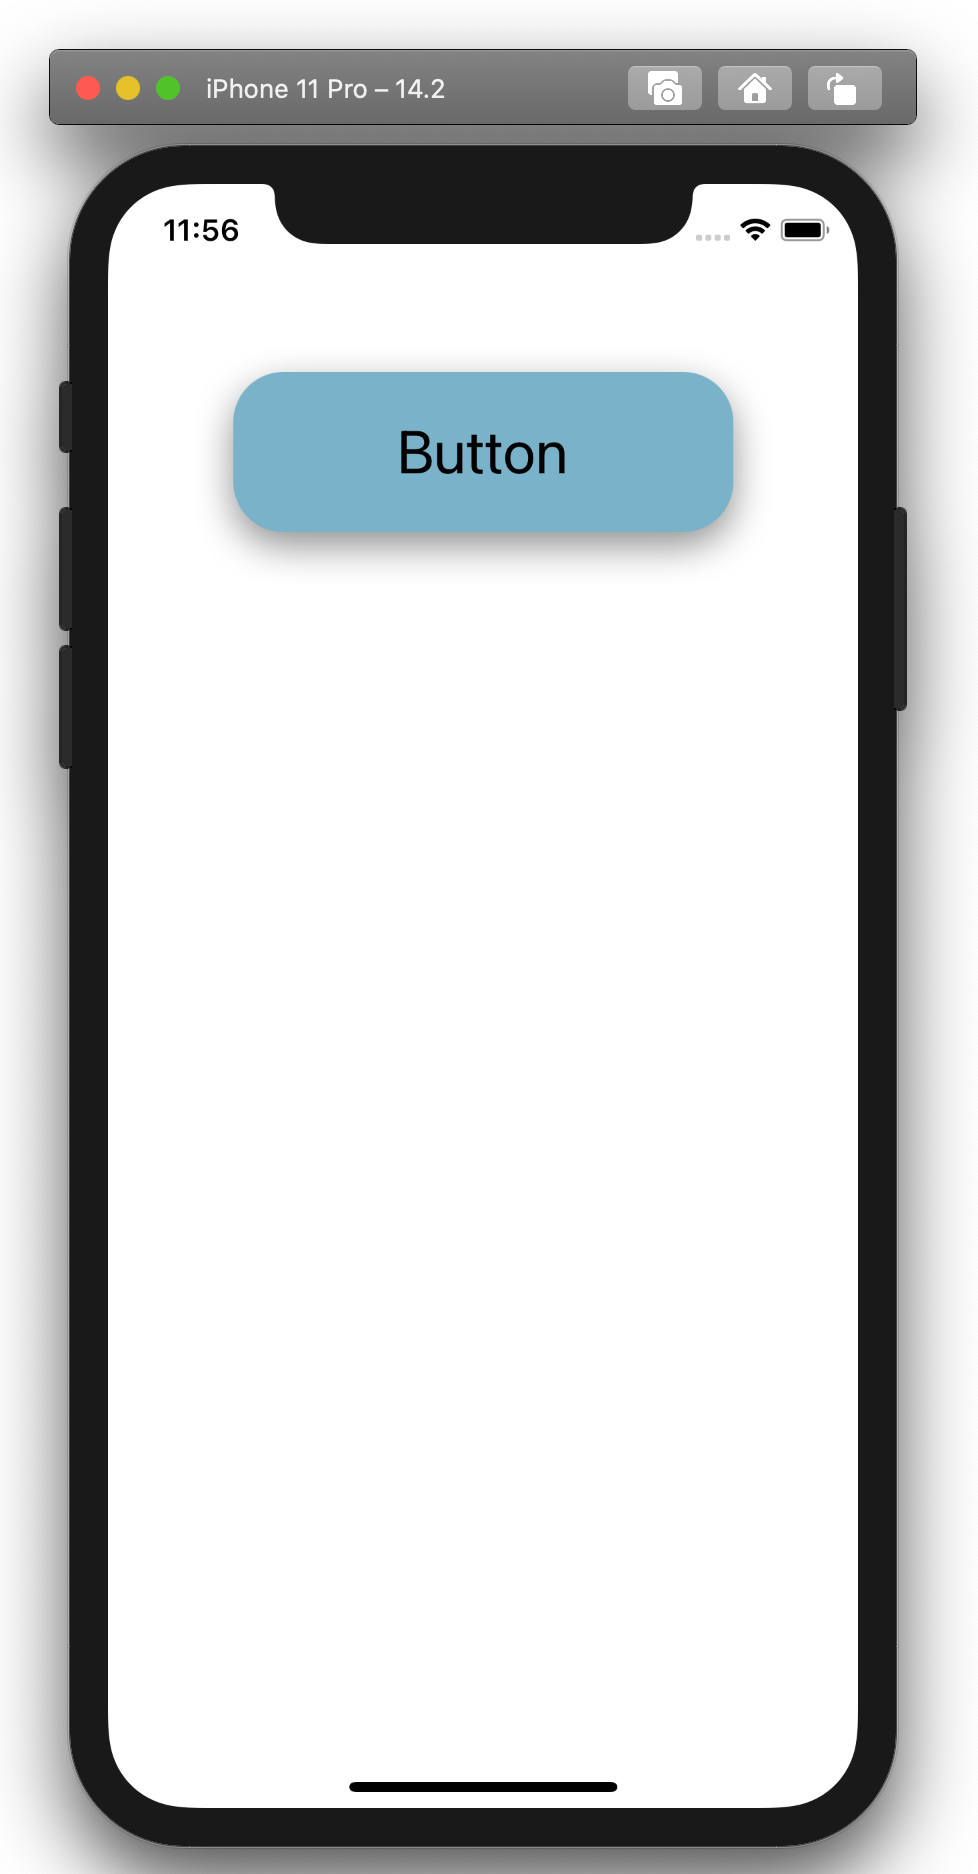 Screen shows button, no animation